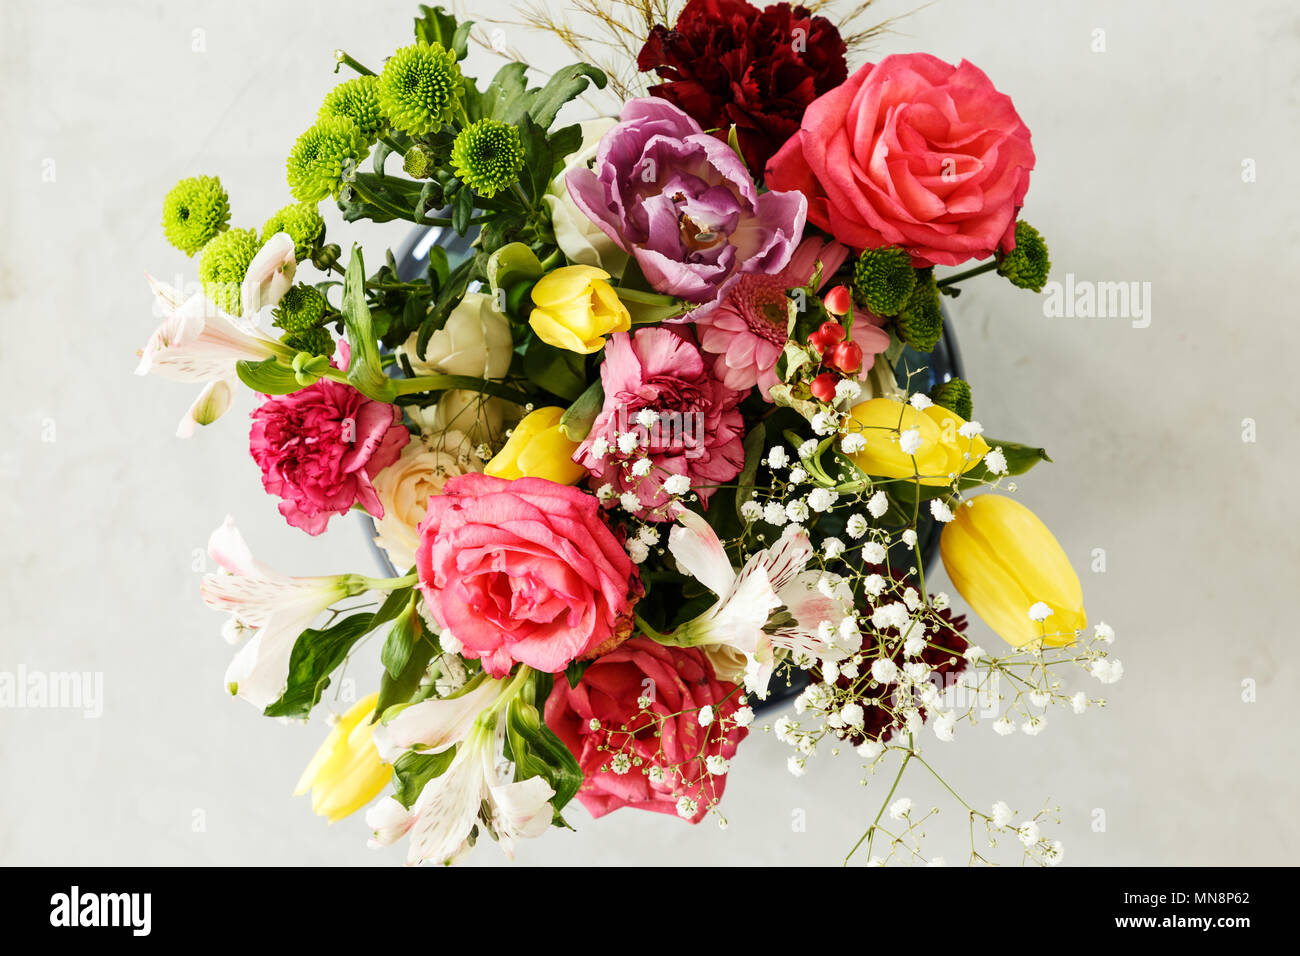 Top view of colorful bouquet of spring flowers pink roses and top view of colorful bouquet of spring flowers pink roses and yellow tulips on a gray background izmirmasajfo